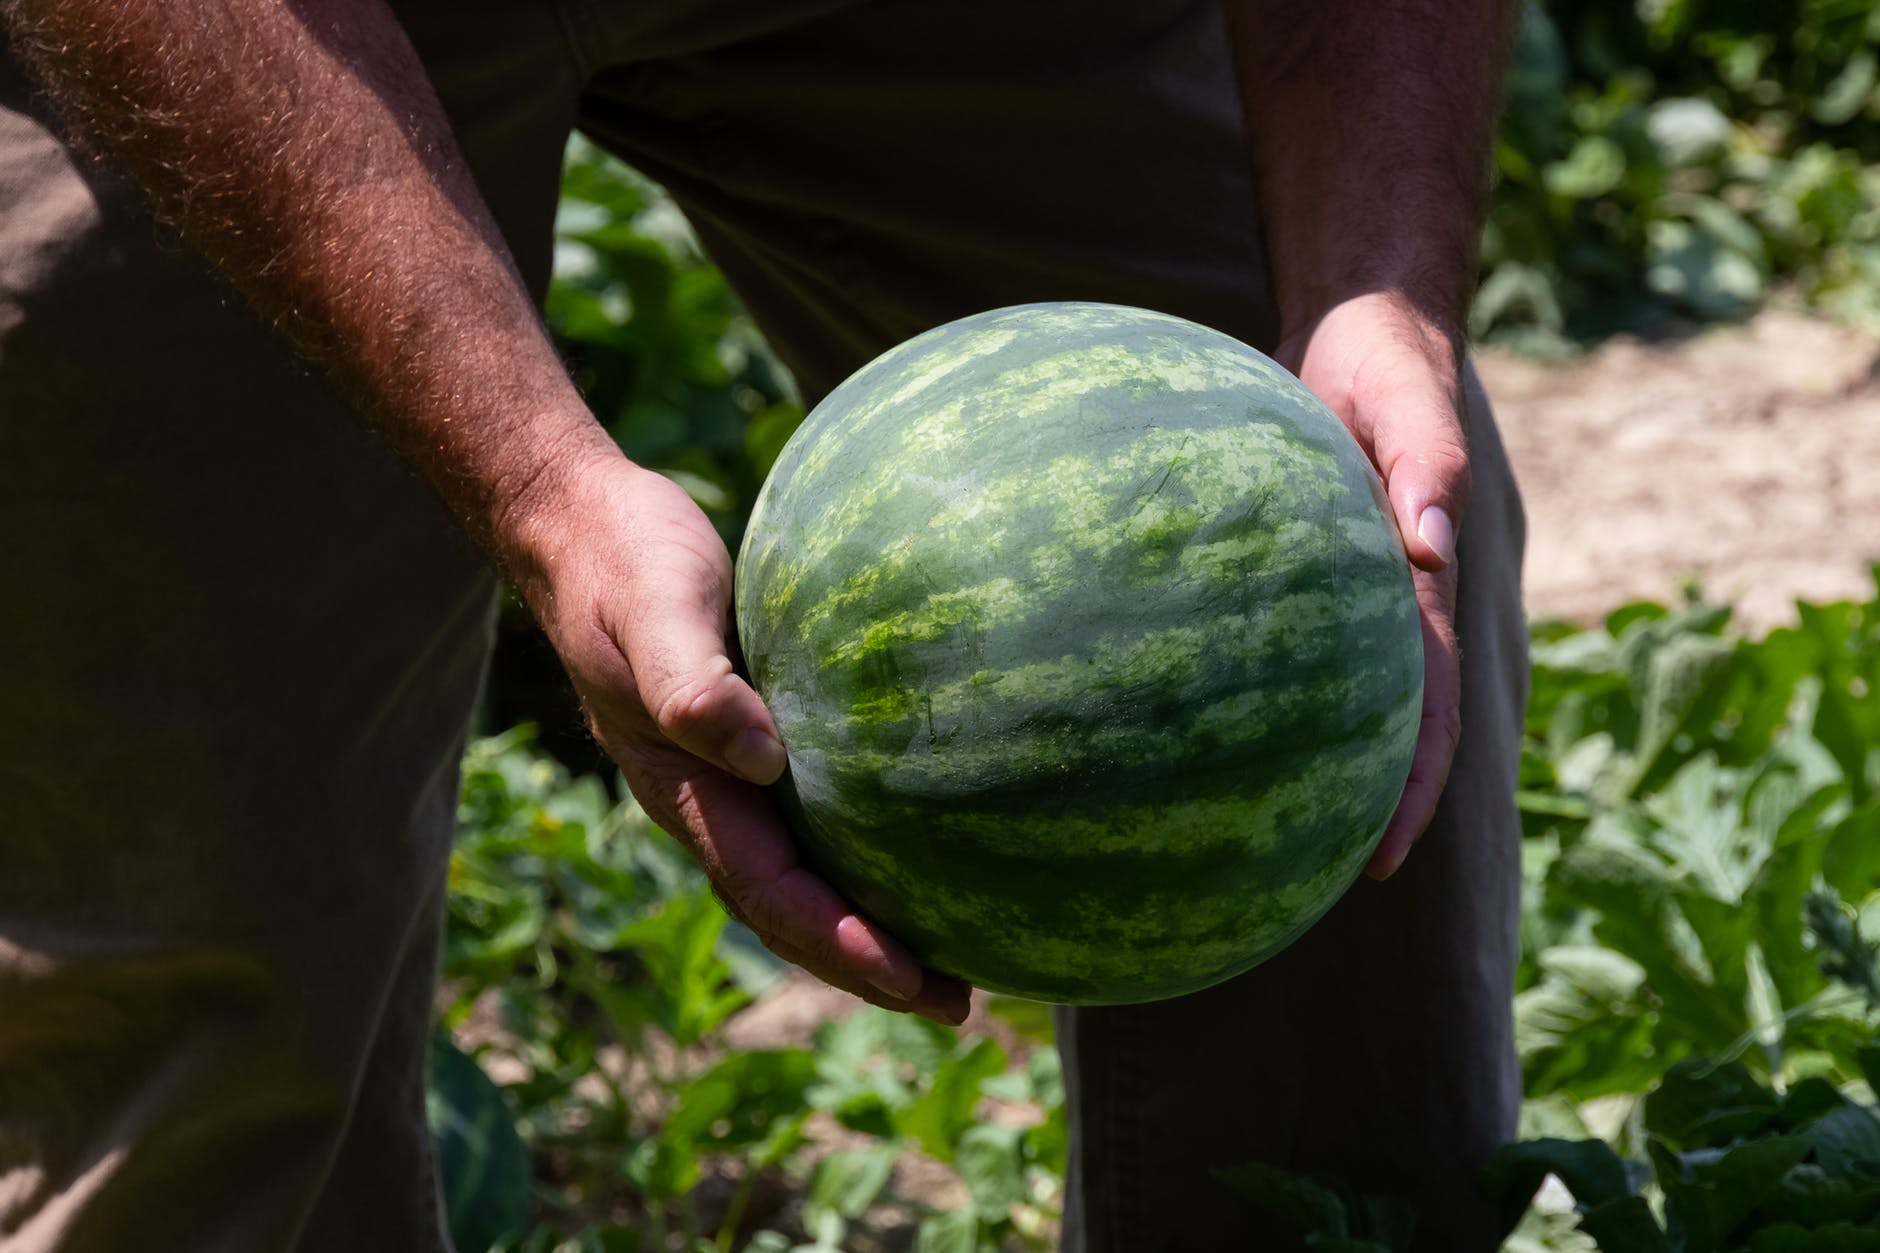 close up photo of person holding green watermelon fruit